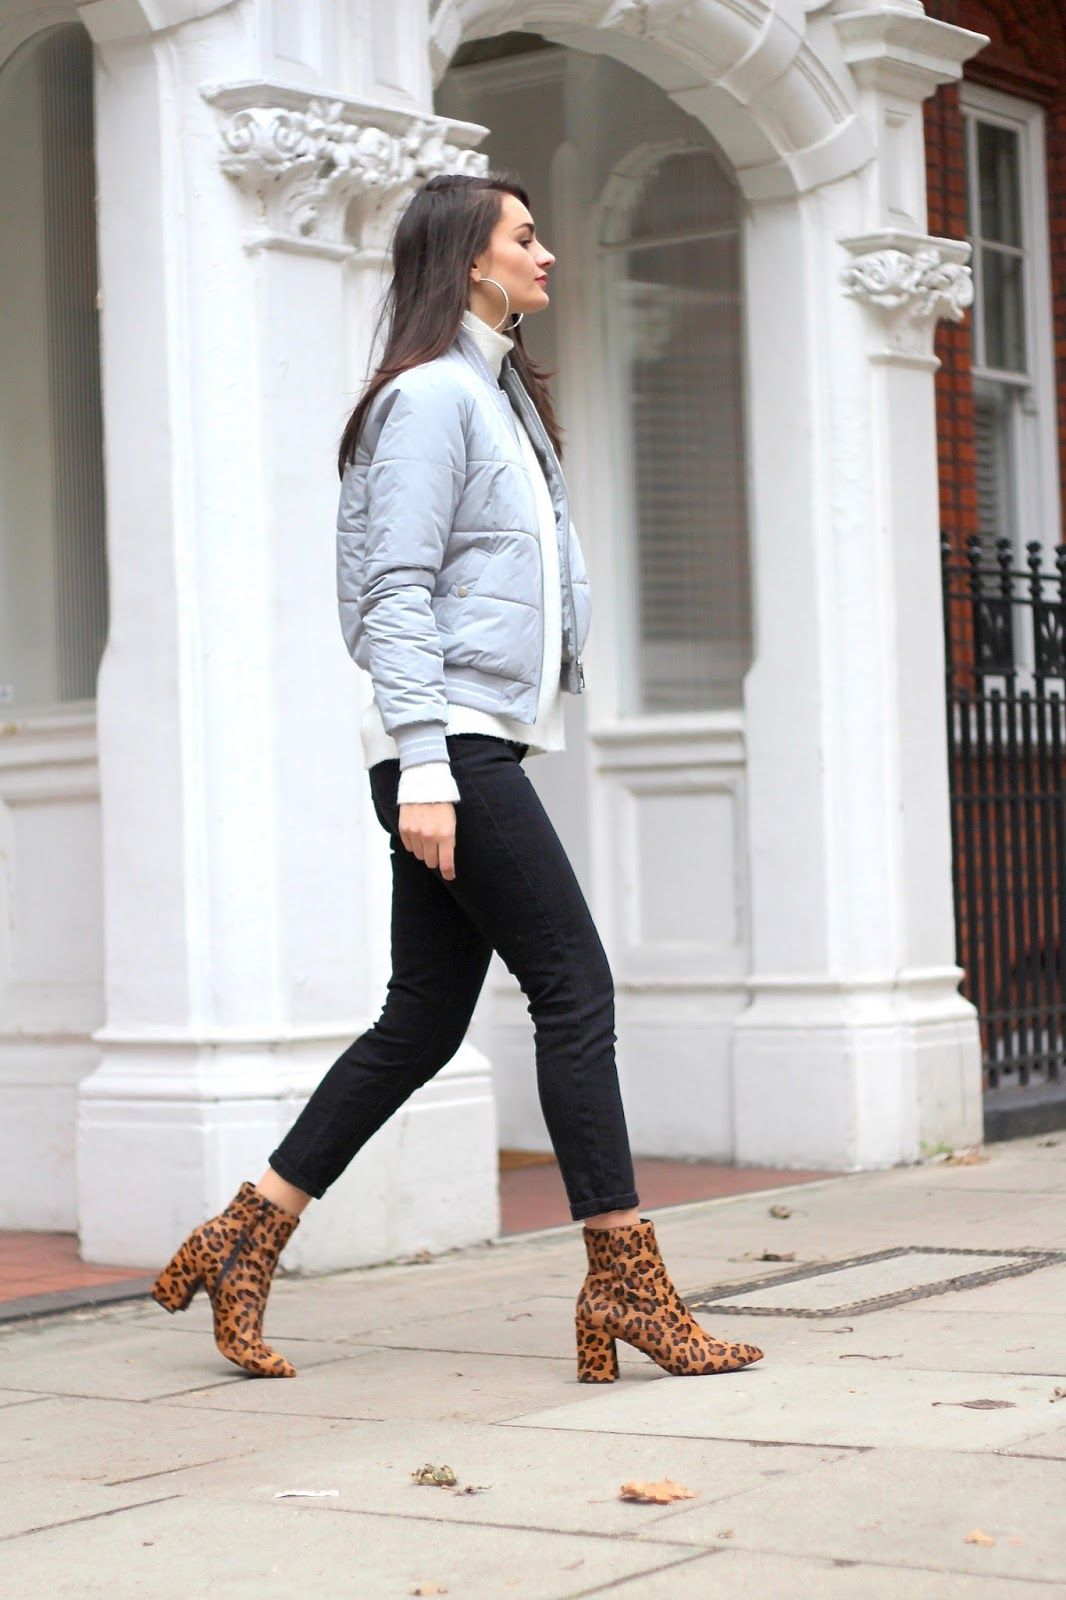 46781d4f2e82 ankle boots asos autumn boots farleigh fashion jacket jeans jumper leopard  print lipsy missguided mom jeans puffer jacket roll neck topshop